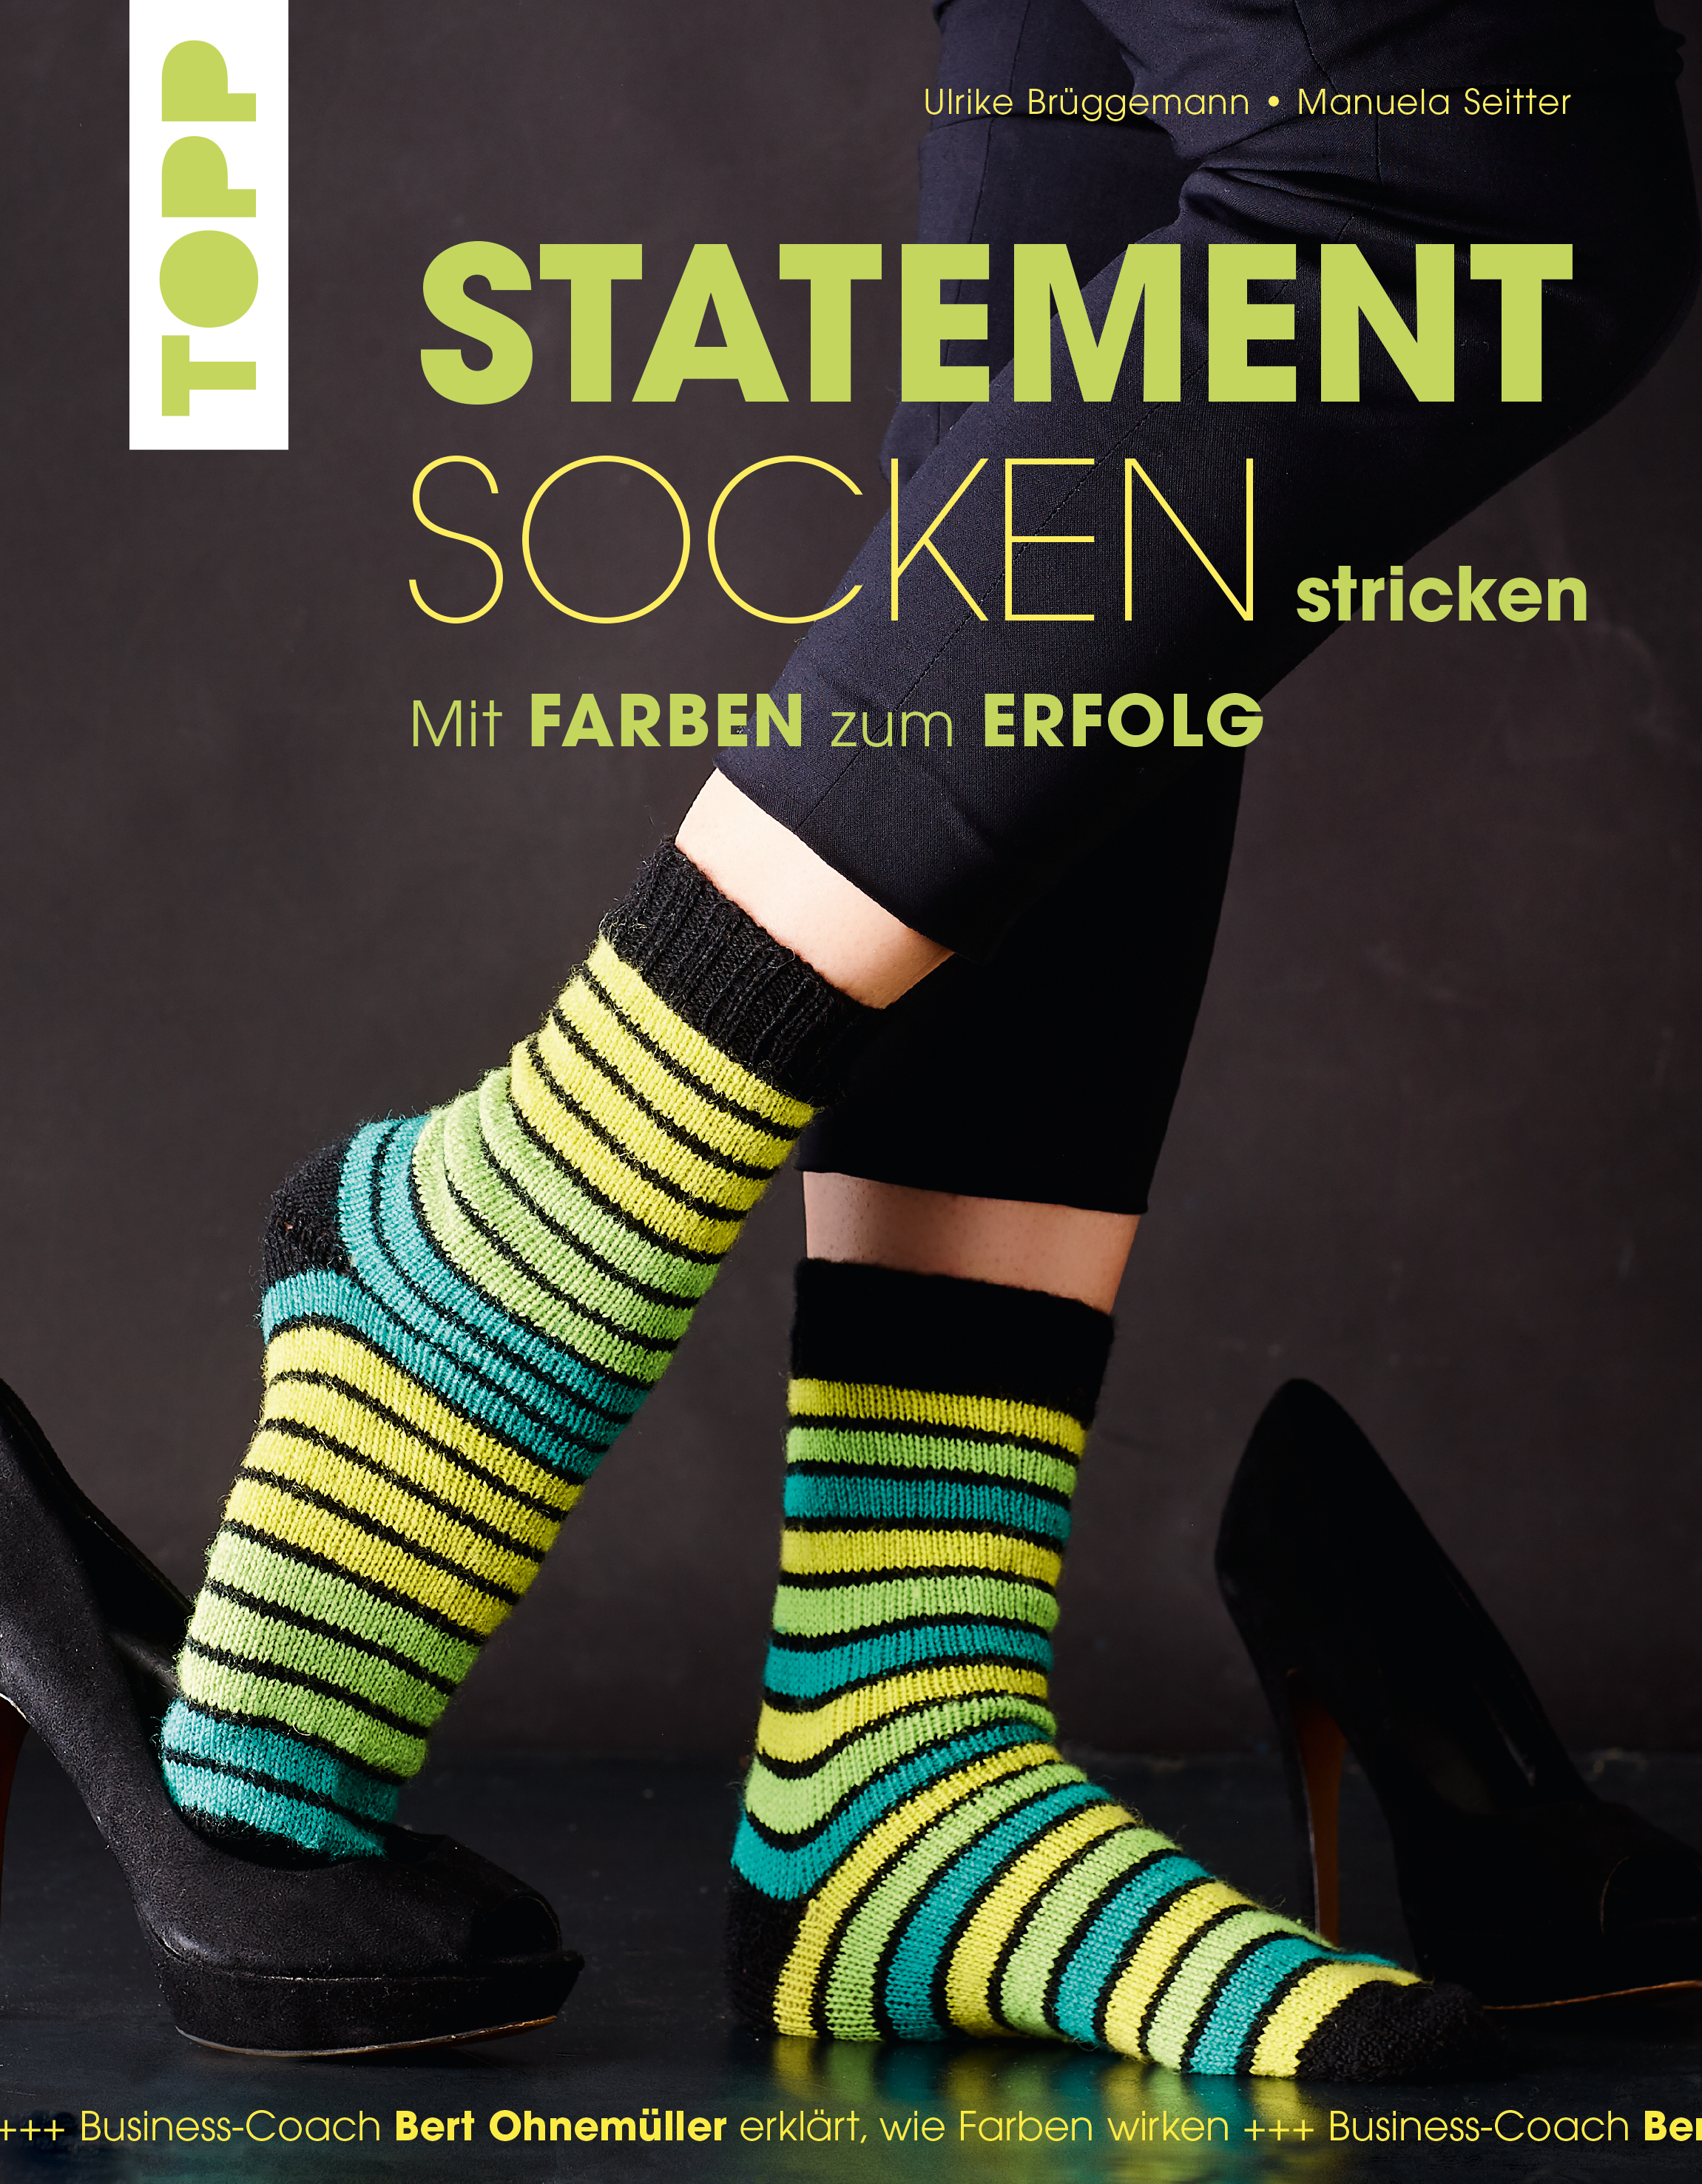 Topp 8139 Statement Socken stricken